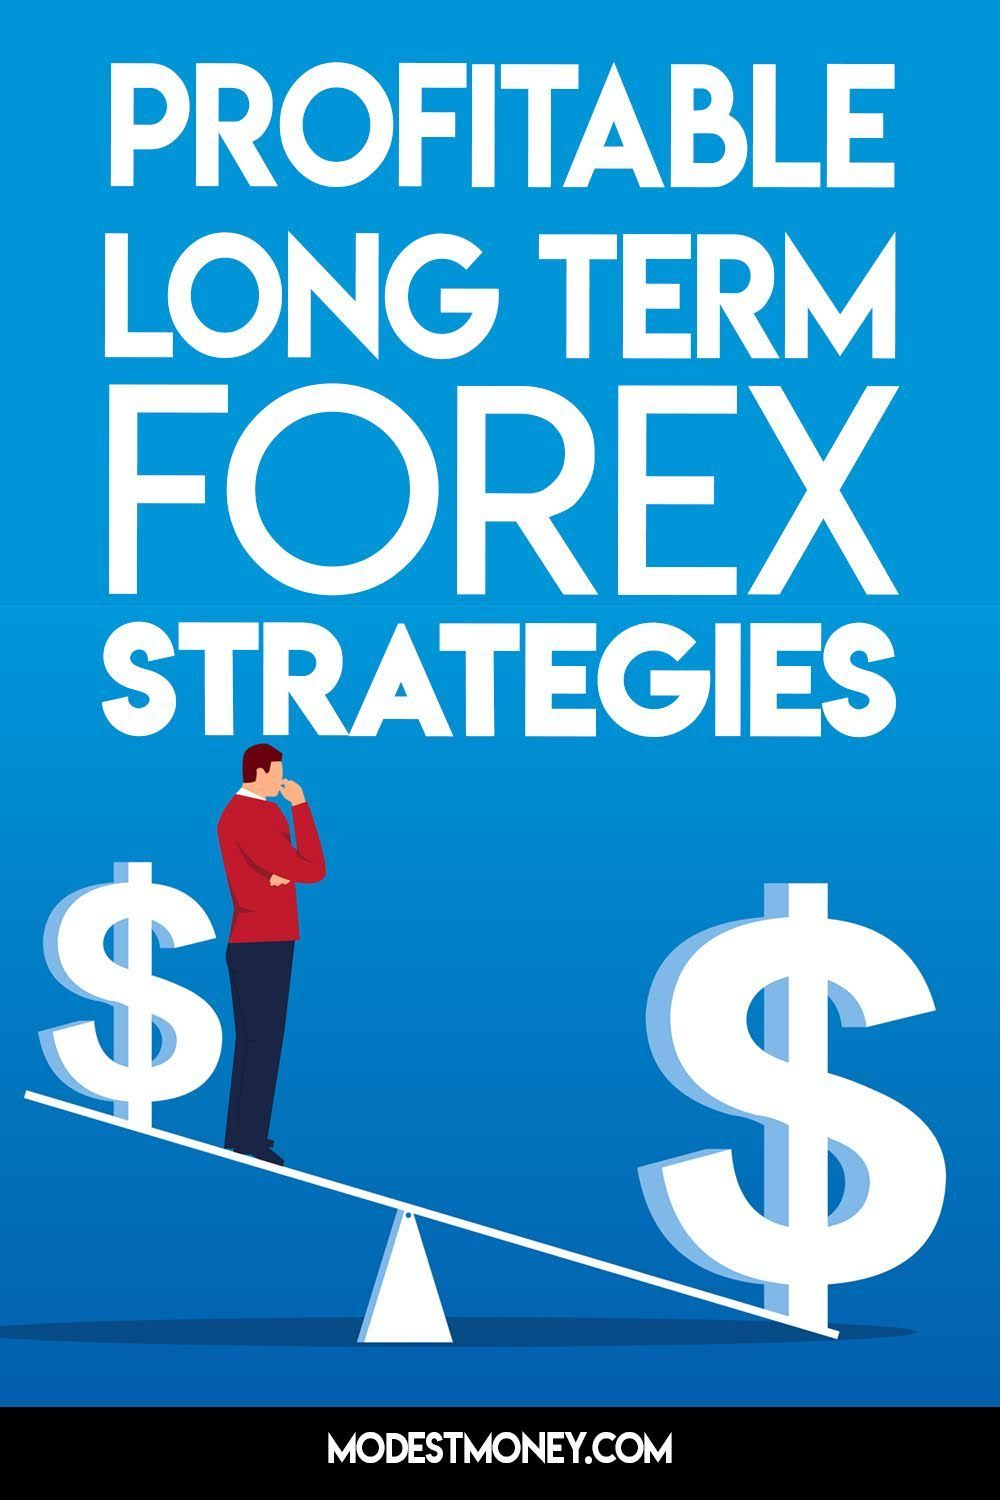 The Most Profitable Long Term Forex Strategies To Help You Make